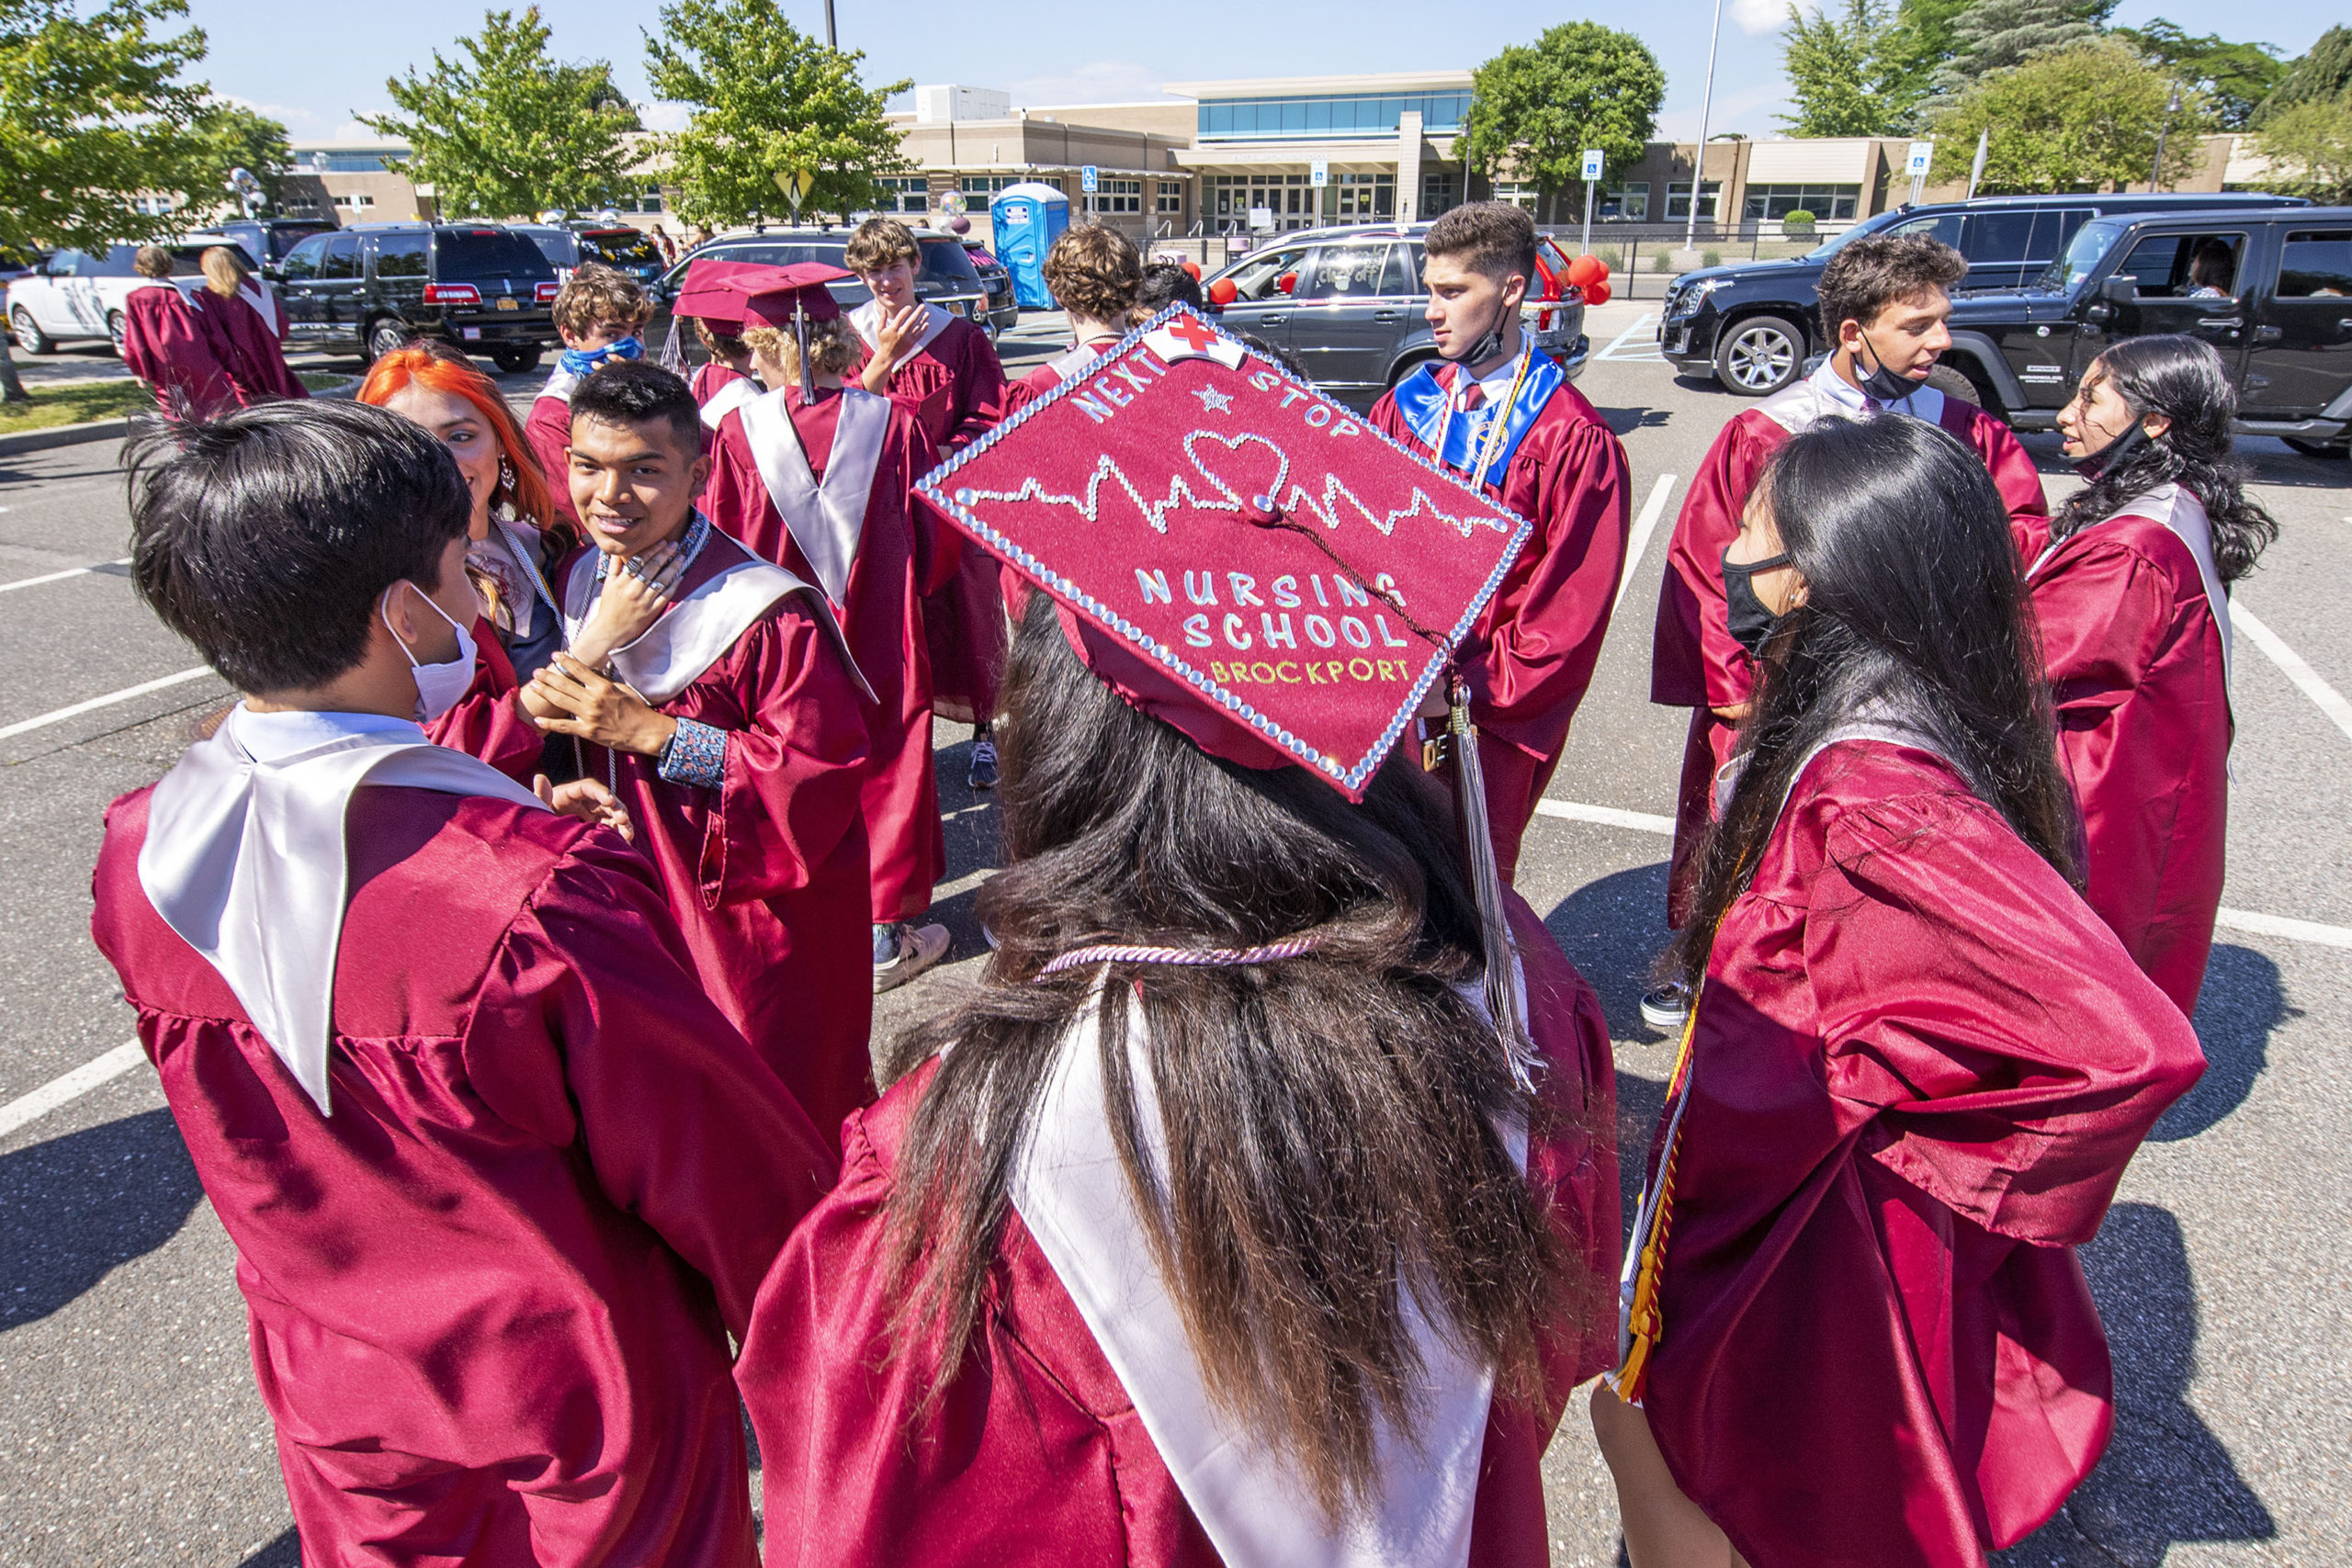 East Hampton High School Senior Tia Weiss proudly shows off her next stop as she greets her classmates in the parking lot as she gets ready to participate in the 2020 graduation ceremony at the East Hampton High School on Friday.